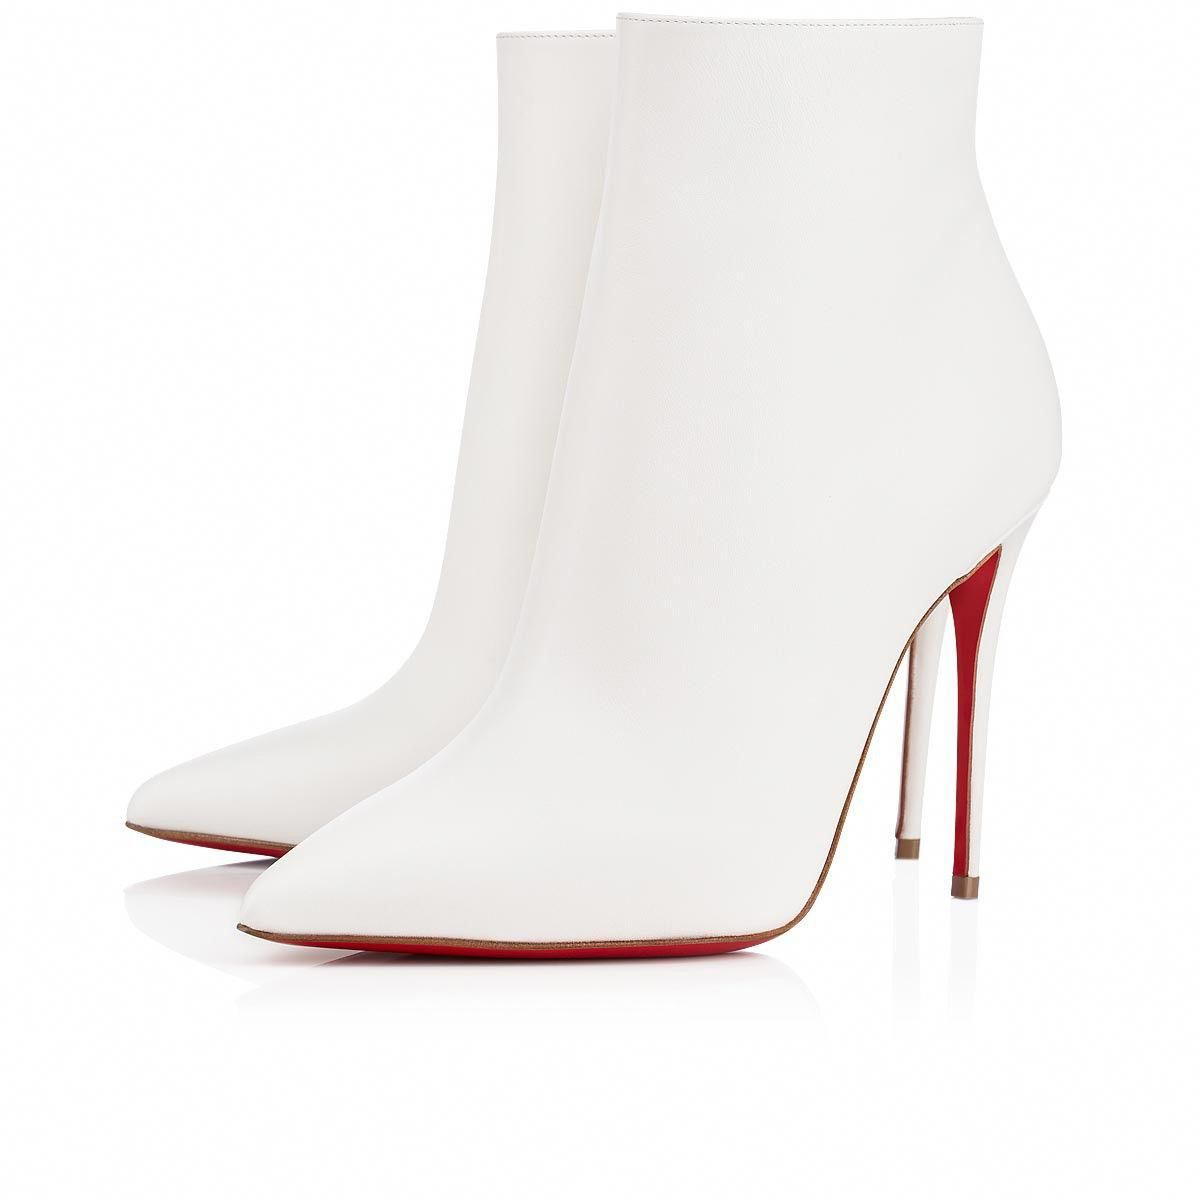 bfb882119958 Christian Louboutin United States Official Online Boutique - So Kate Booty  100 Latte Leather available online